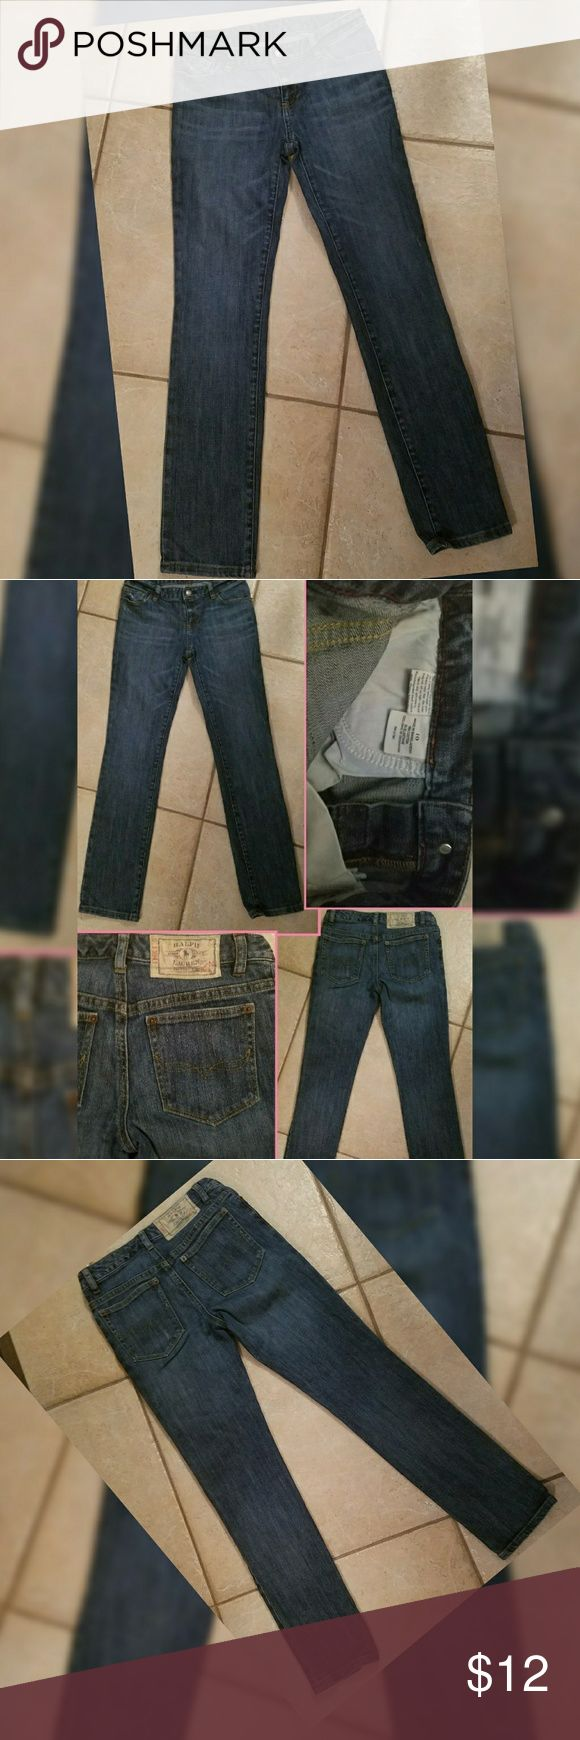 Ralph Lauren Polo Jeans for Girls Ralph Lauren Polo Jeans for Girls Size 10. Excellent Conditjon no noted flaws.  Smoke and pet free home. Offer welcome Polo by Ralph Lauren Bottoms Jeans